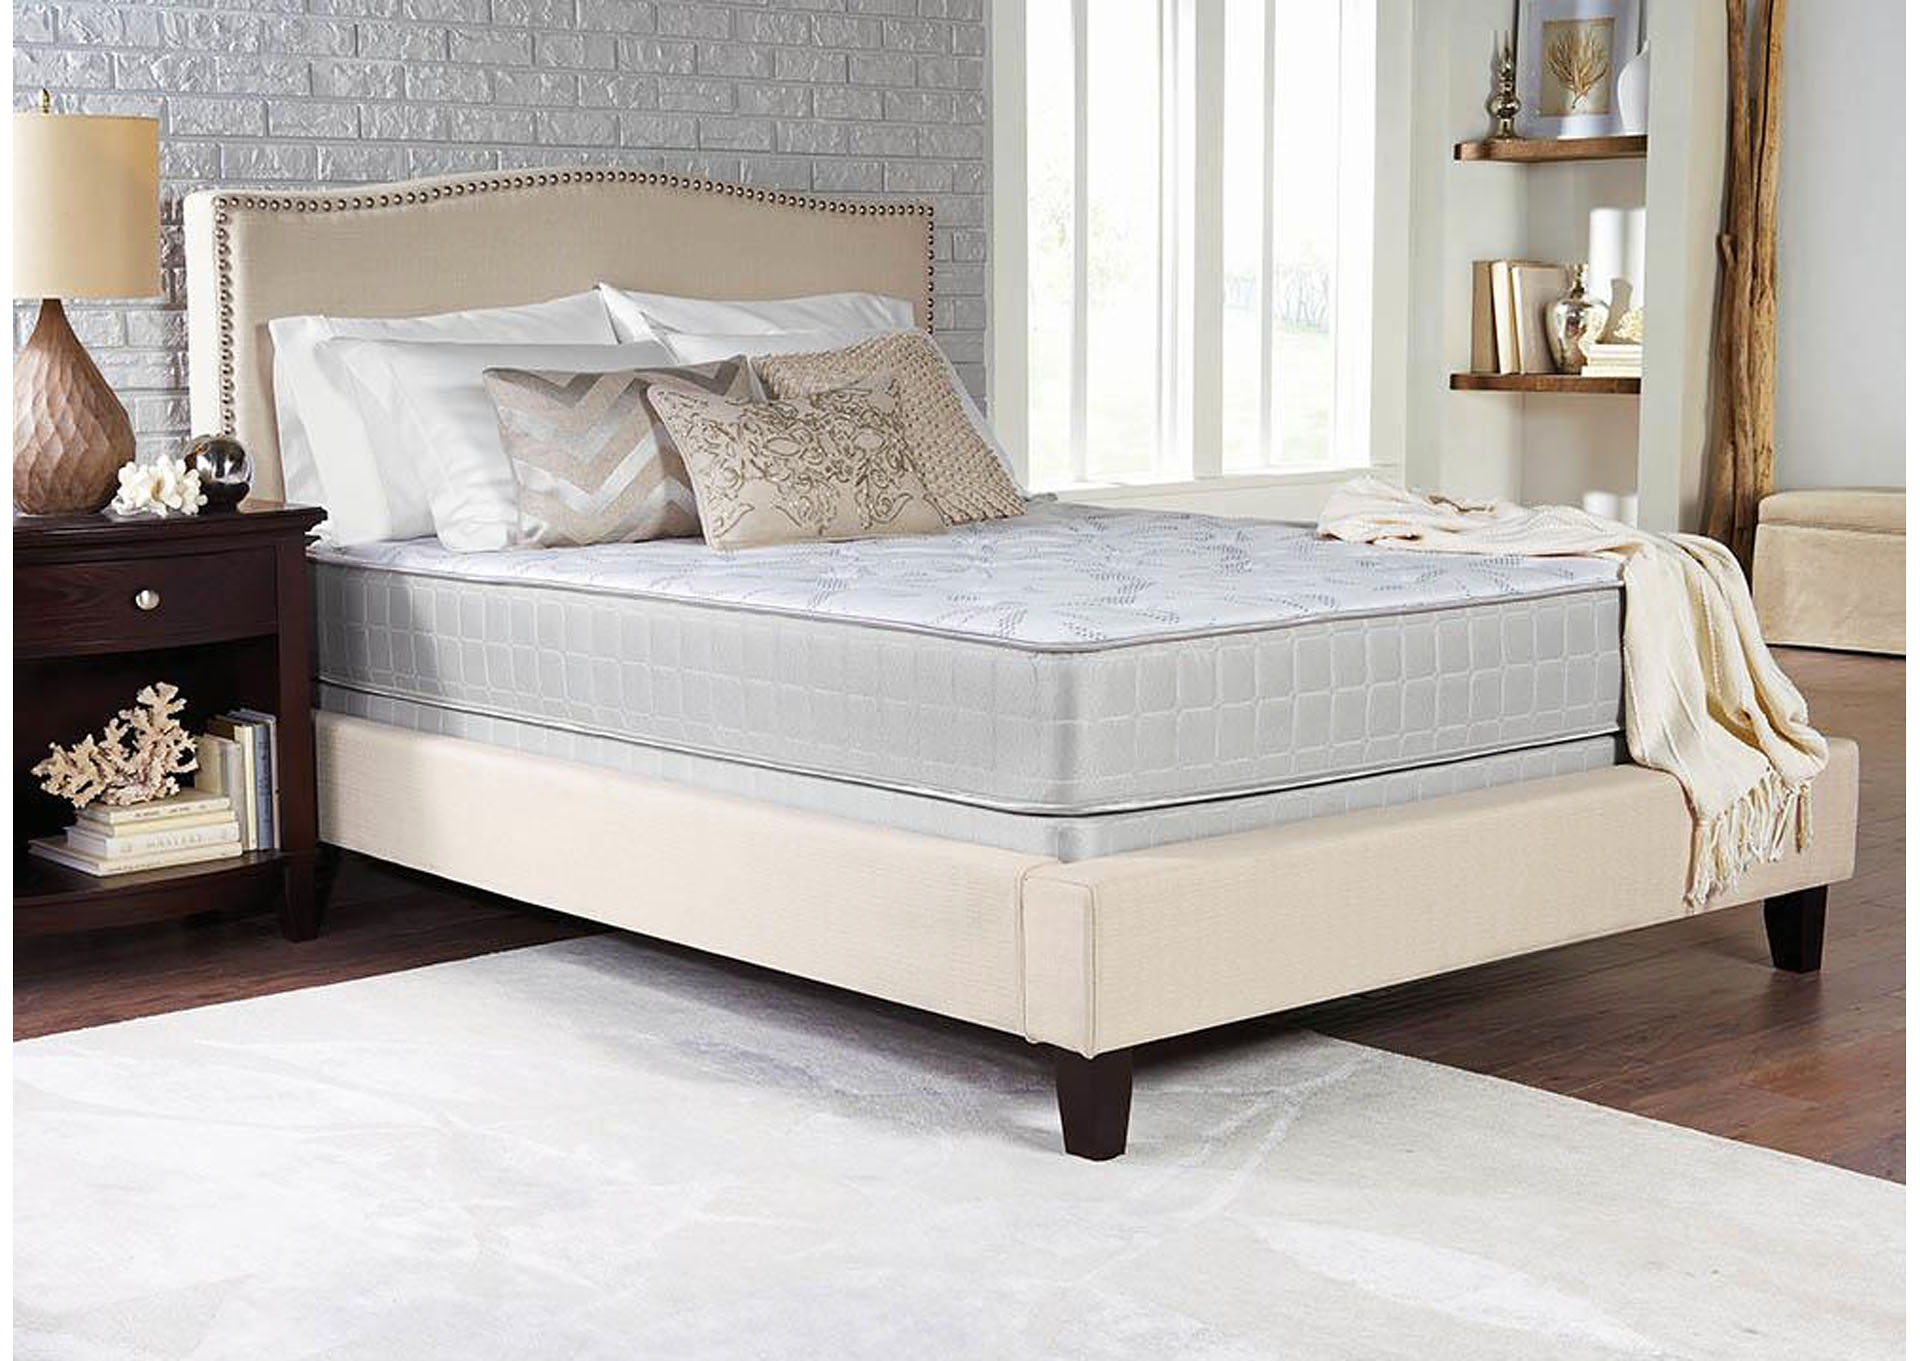 Crystal Cove Plush Eastern King Mattress,Coaster Furniture